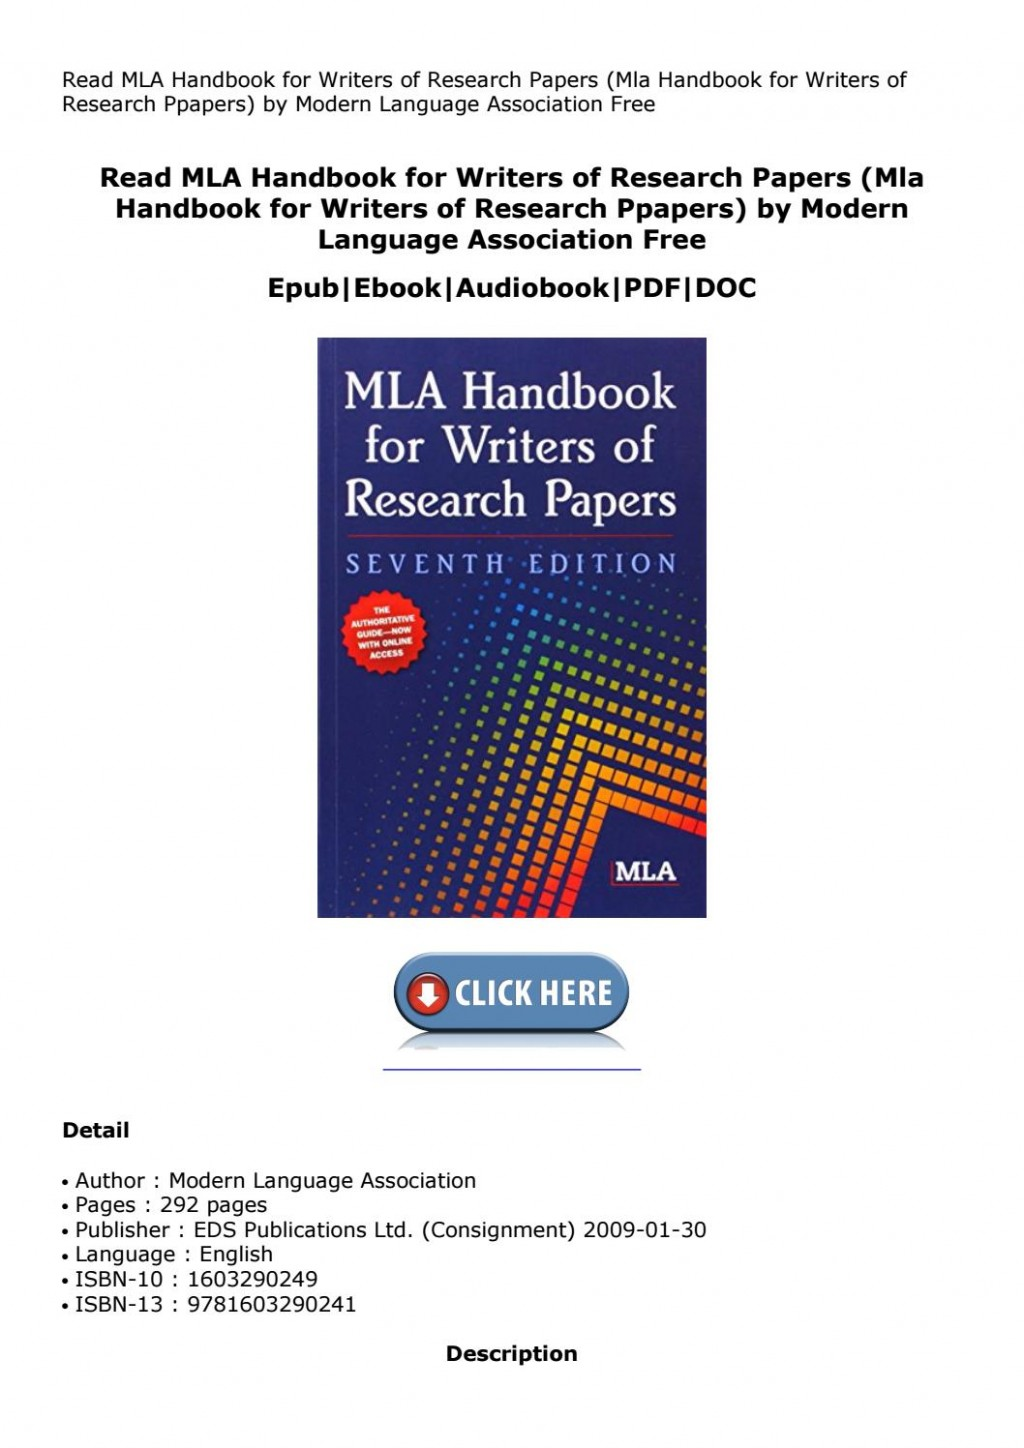 008 Research Paper Page 1 Mla Handbook For Writing Frightening Papers Writers Of 8th Edition Pdf Free Download According To The Large